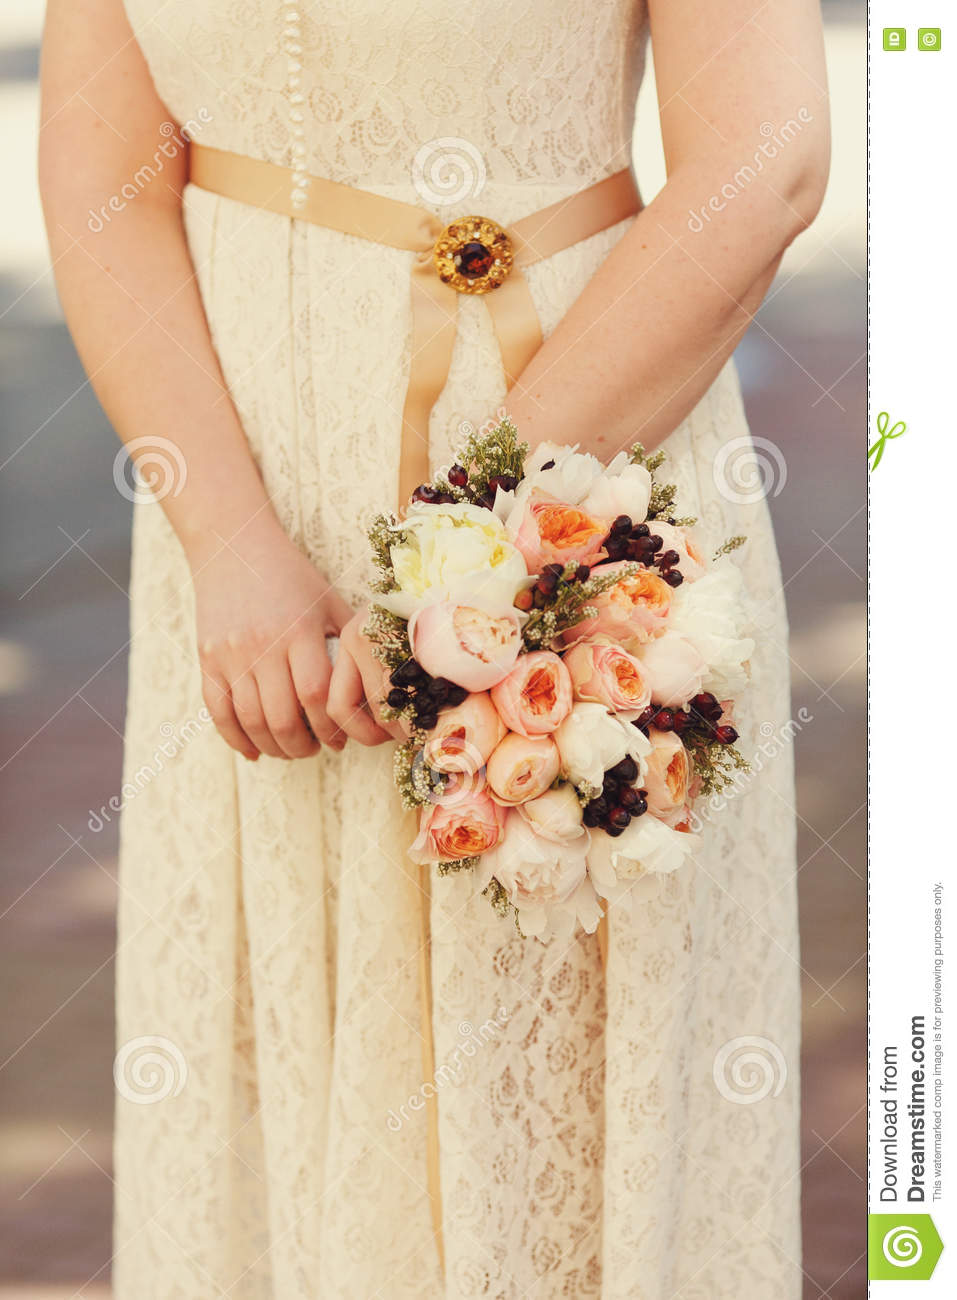 Bride In Peach Dress Holds A Wedding Bouquet Of Pink Flowers Stock